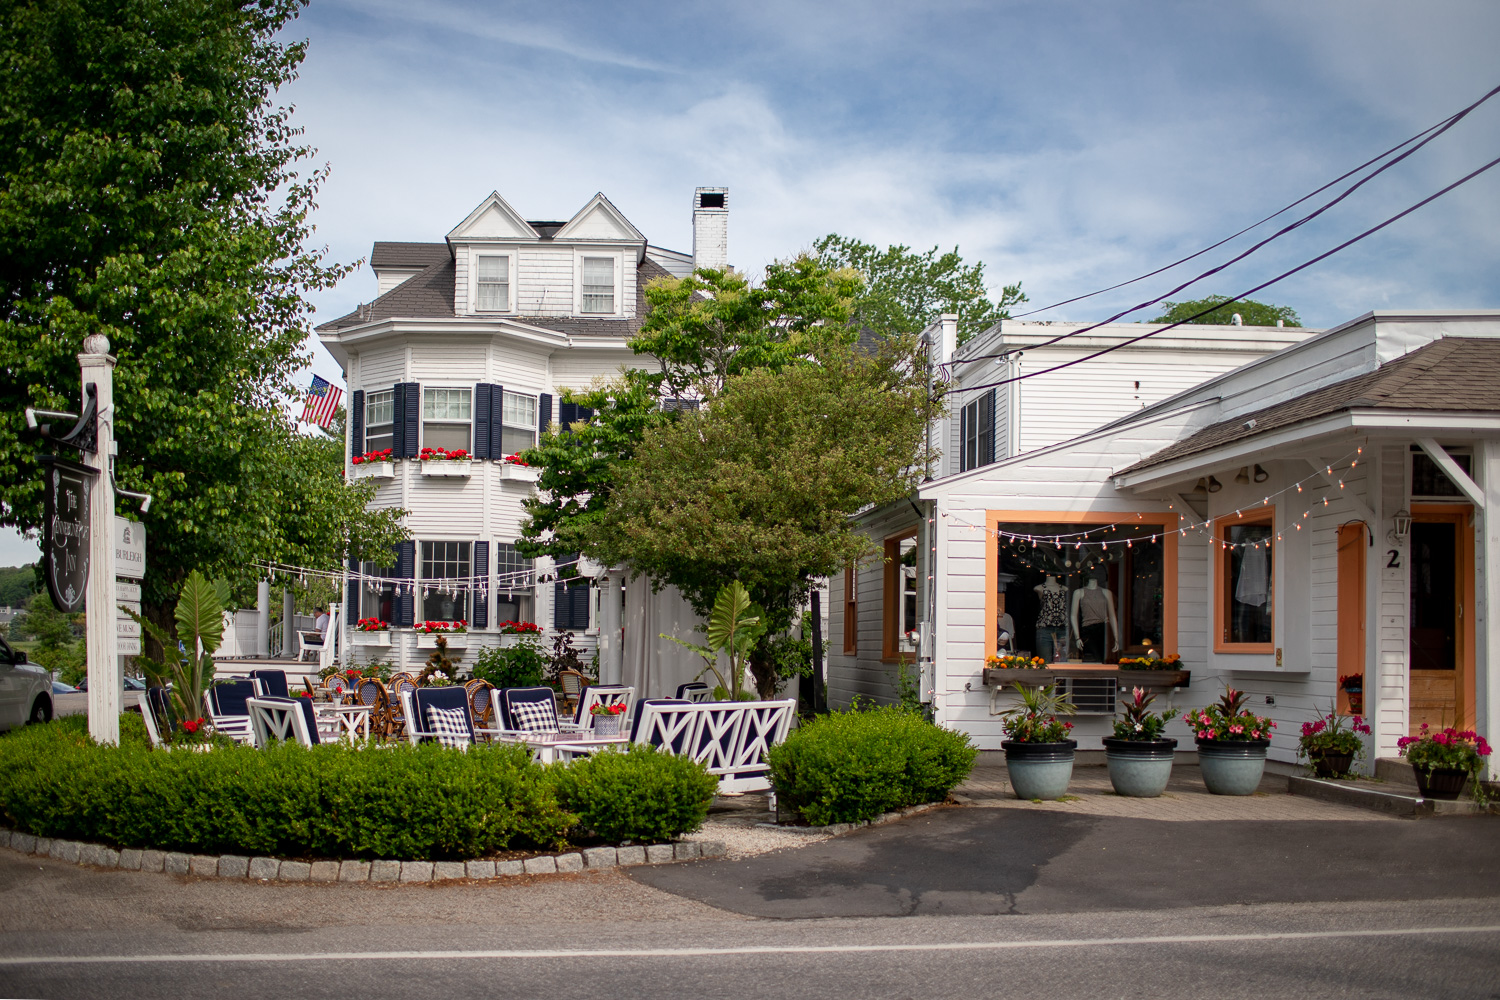 The gorgeous Kennebunkport Inn in the center of town. I would stay here or at least grab a drink in their outside patio.